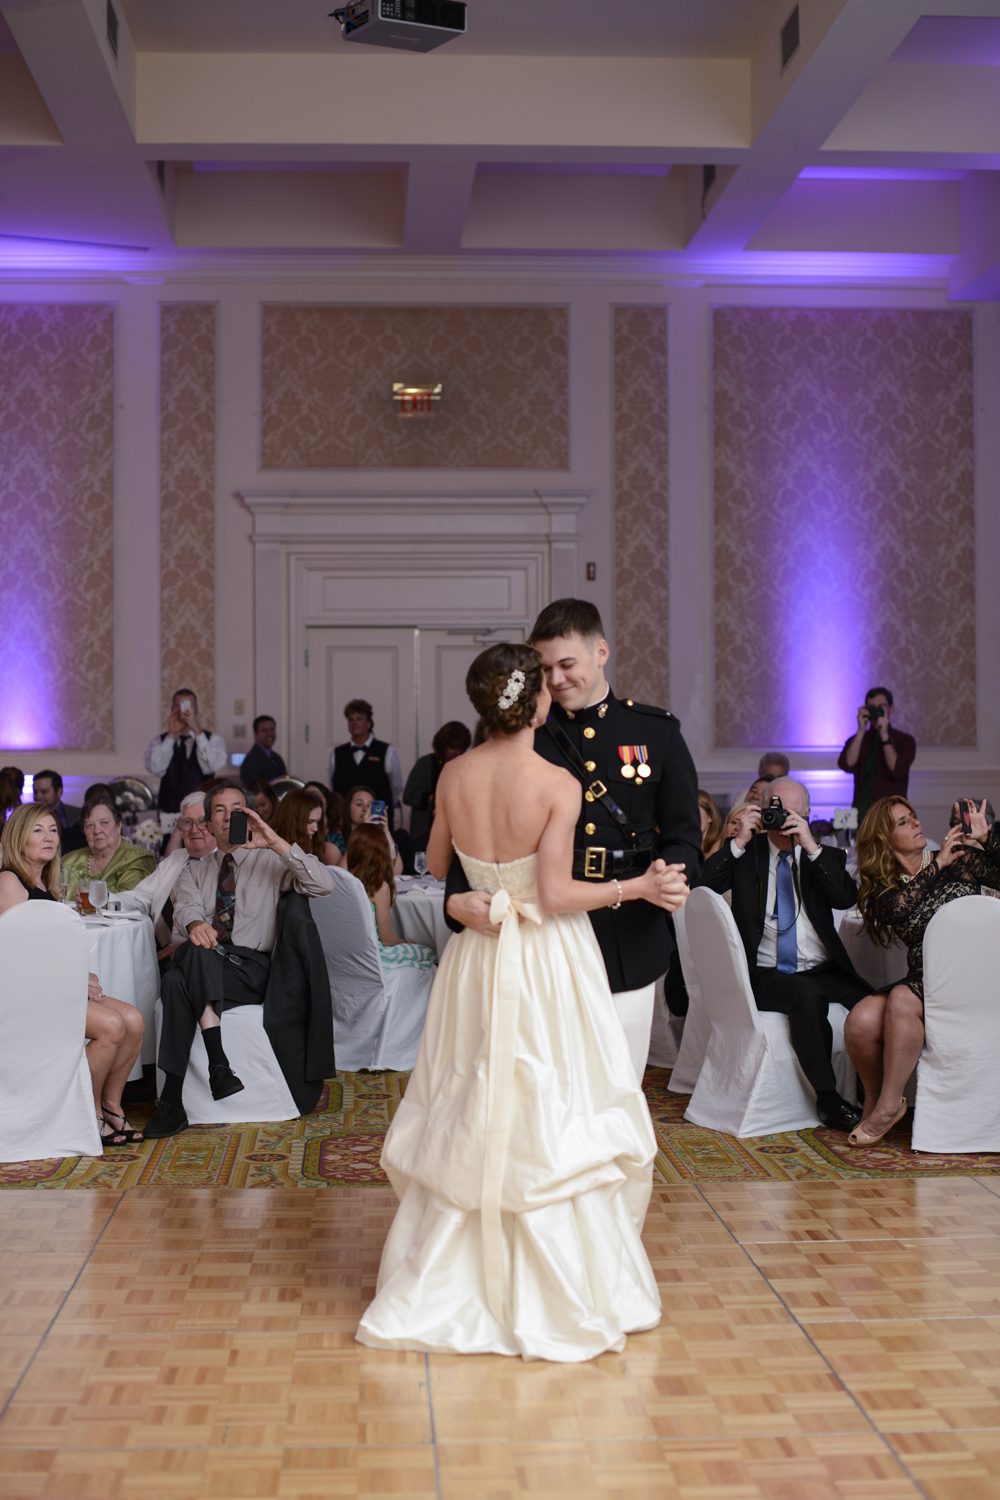 Bride and groom's first dance |Maria Grace Photography